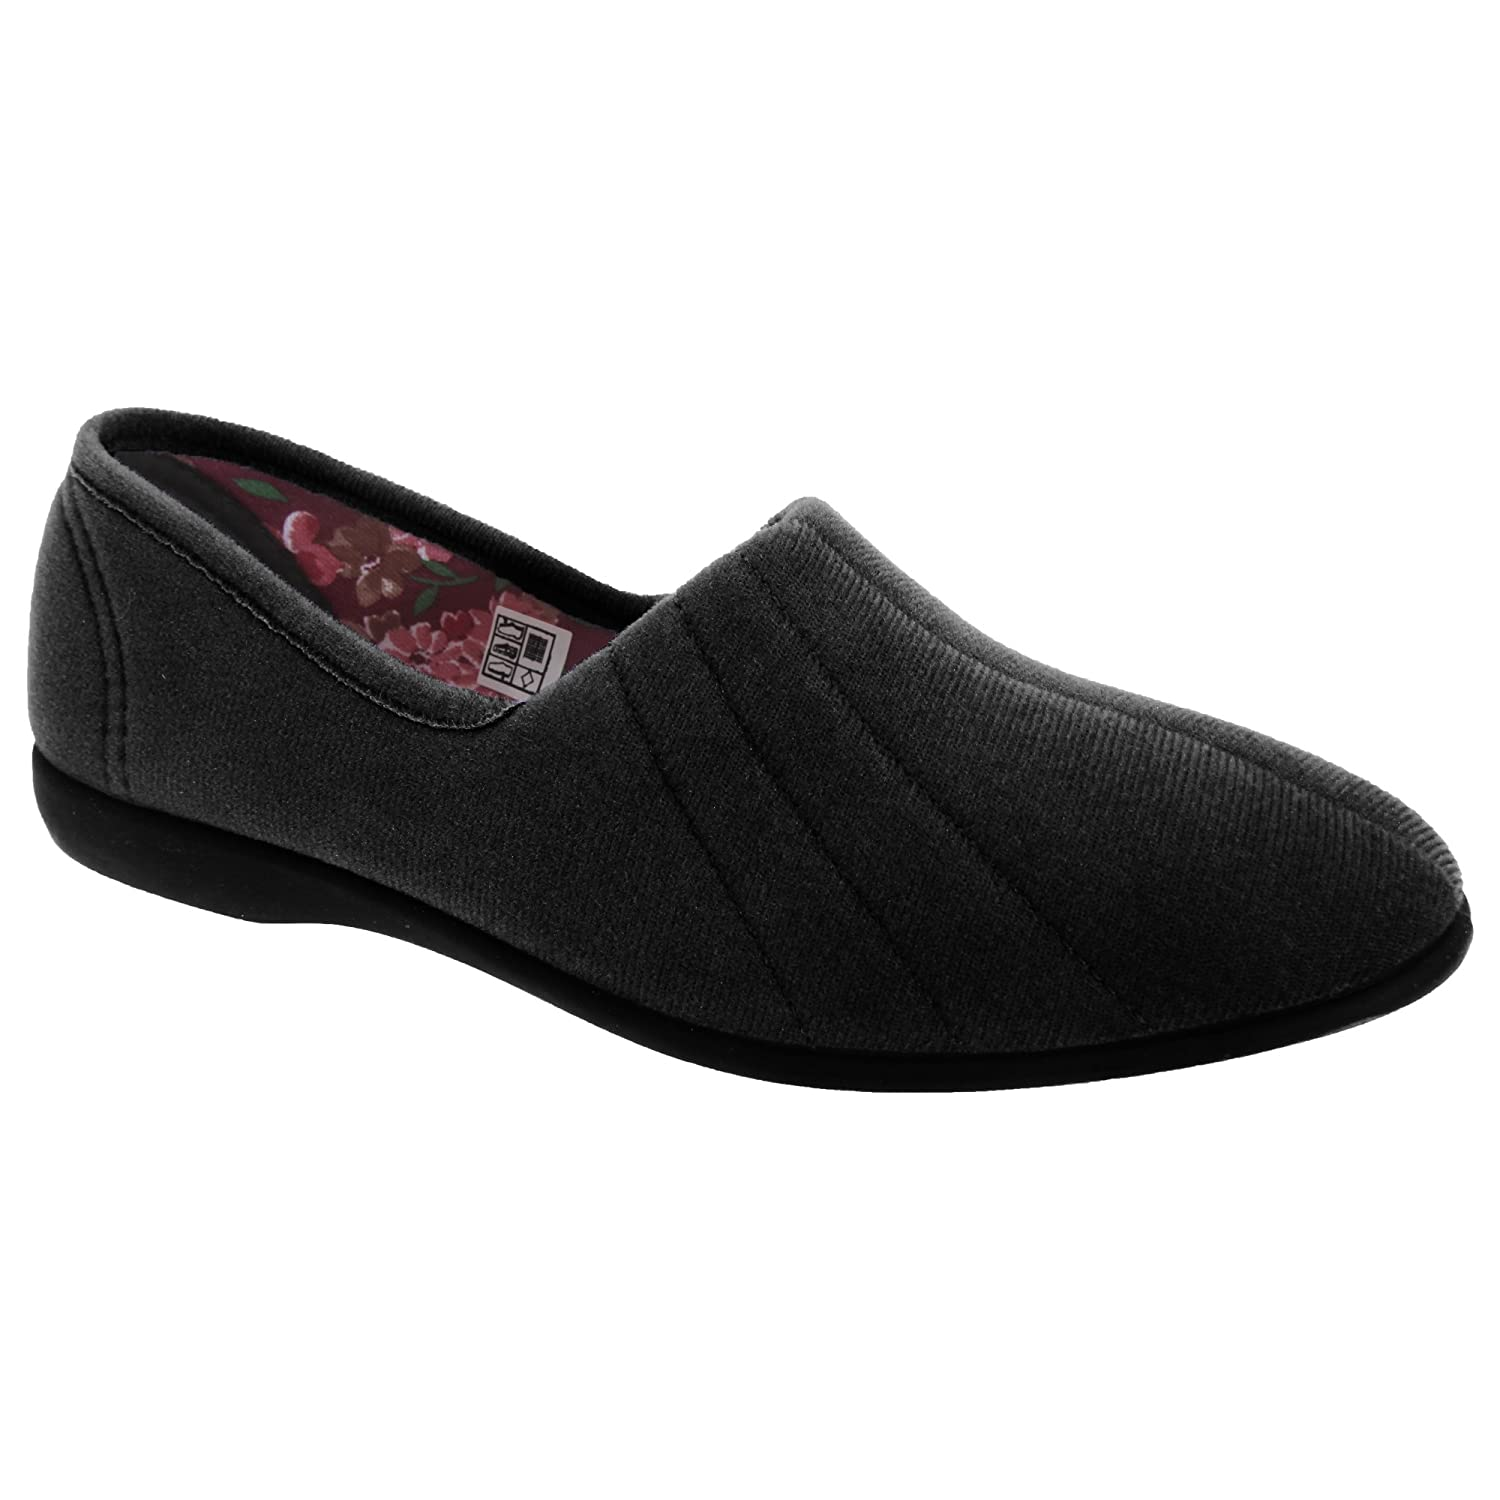 GBS Audrey Ladies Slipper / Womens Slippers (7 UK) (Black): Amazon.co.uk:  Shoes & Bags